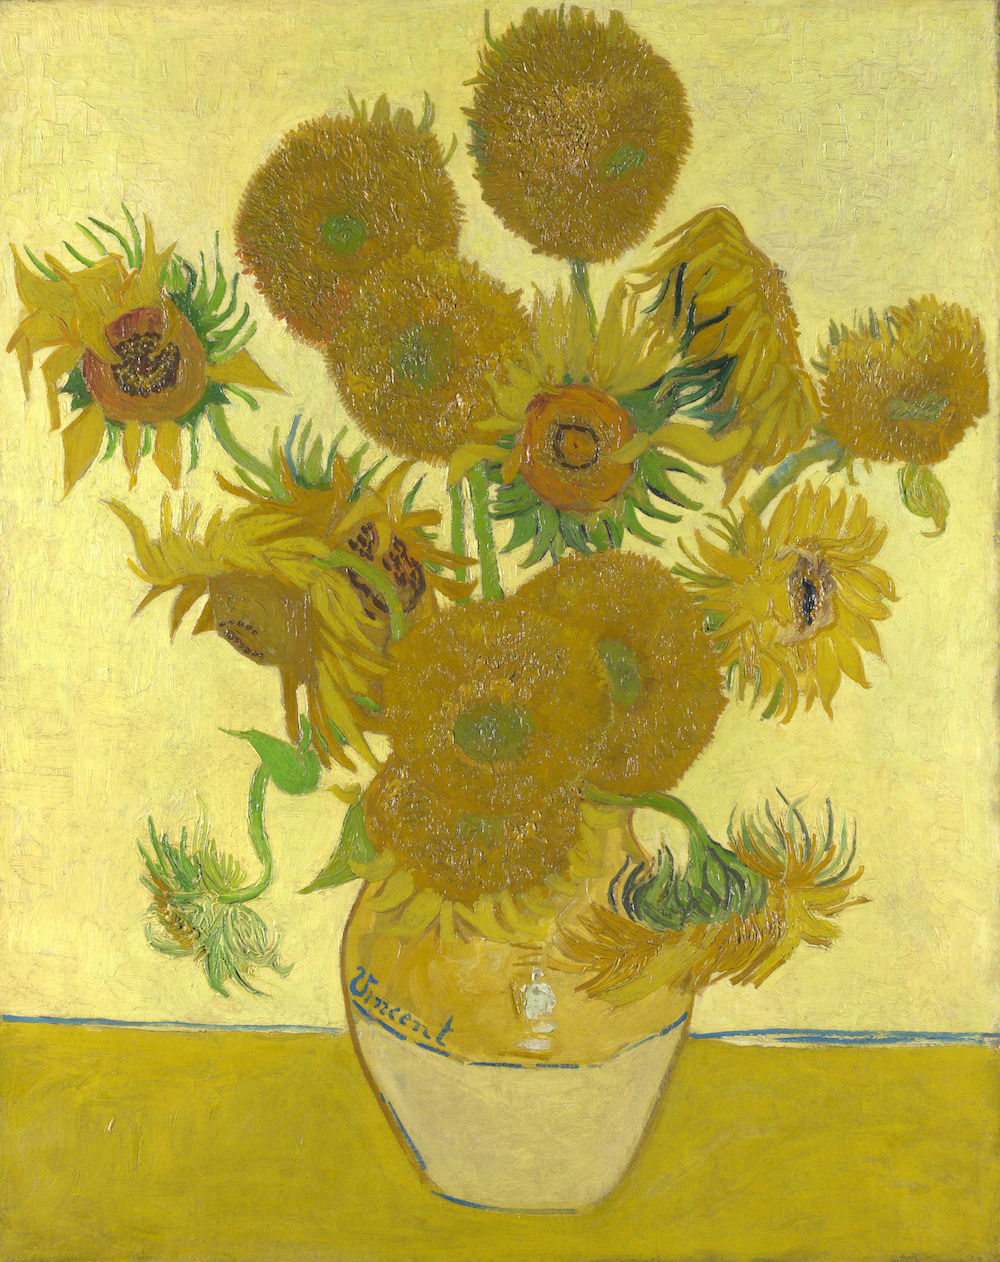 Vincent van Gogh, Sunflowers at the National Gallery in London. Photo Credit: © Public Domain via Wikimedia Commons.